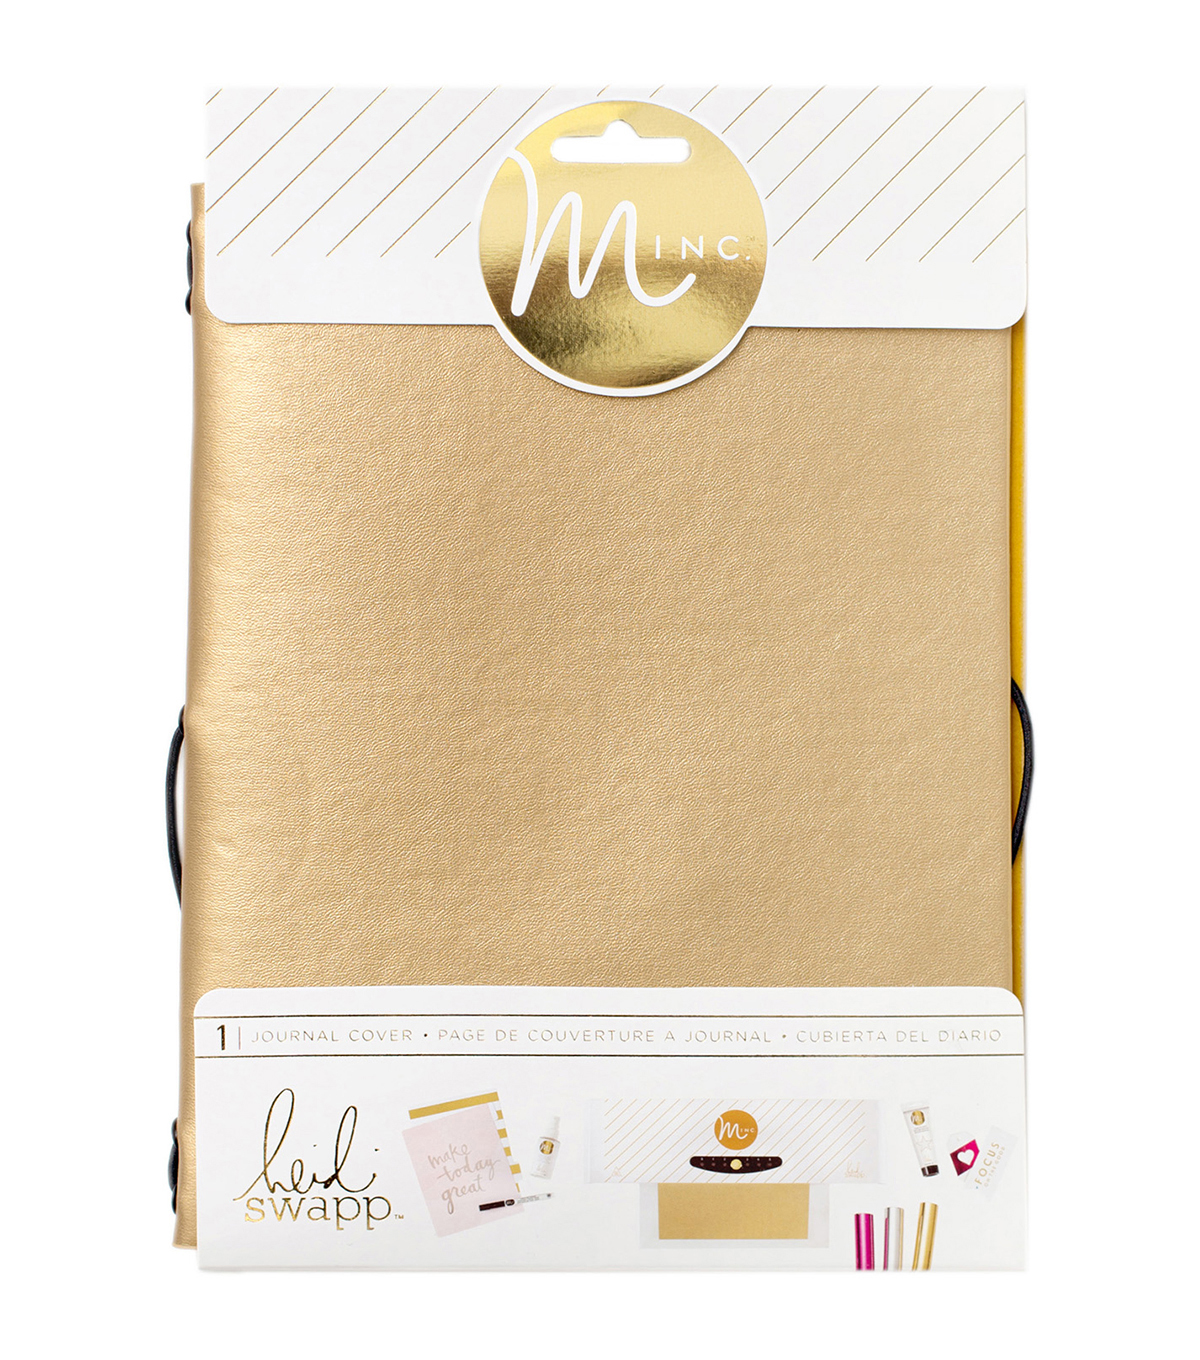 Heidi Swapp Minc Journal Cover 6\u0022X9\u0022-Gold Vinyl